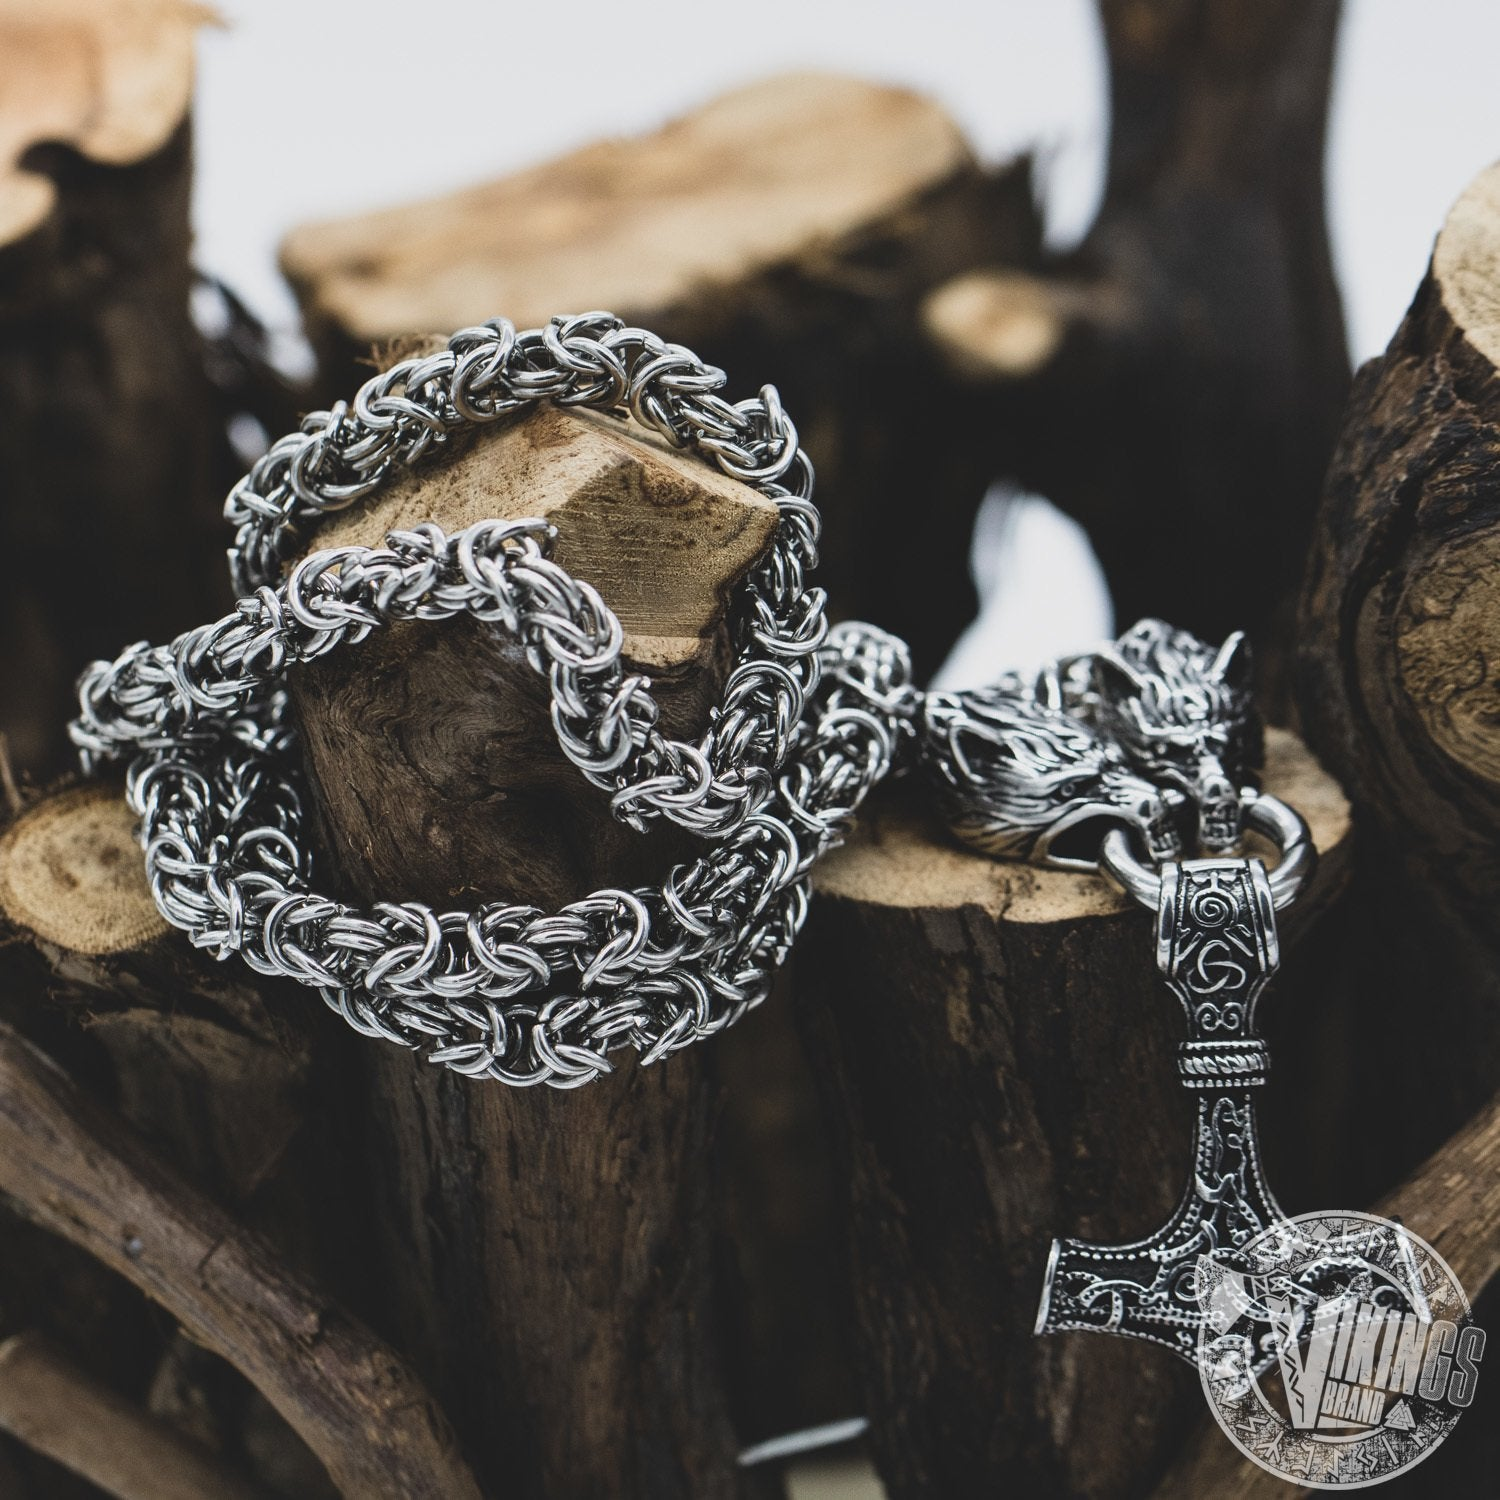 SPECIAL OFFER! Massive Chain Viking Men Necklace with Wolf Heads and Mjolnir Pendant - VikingsBrand